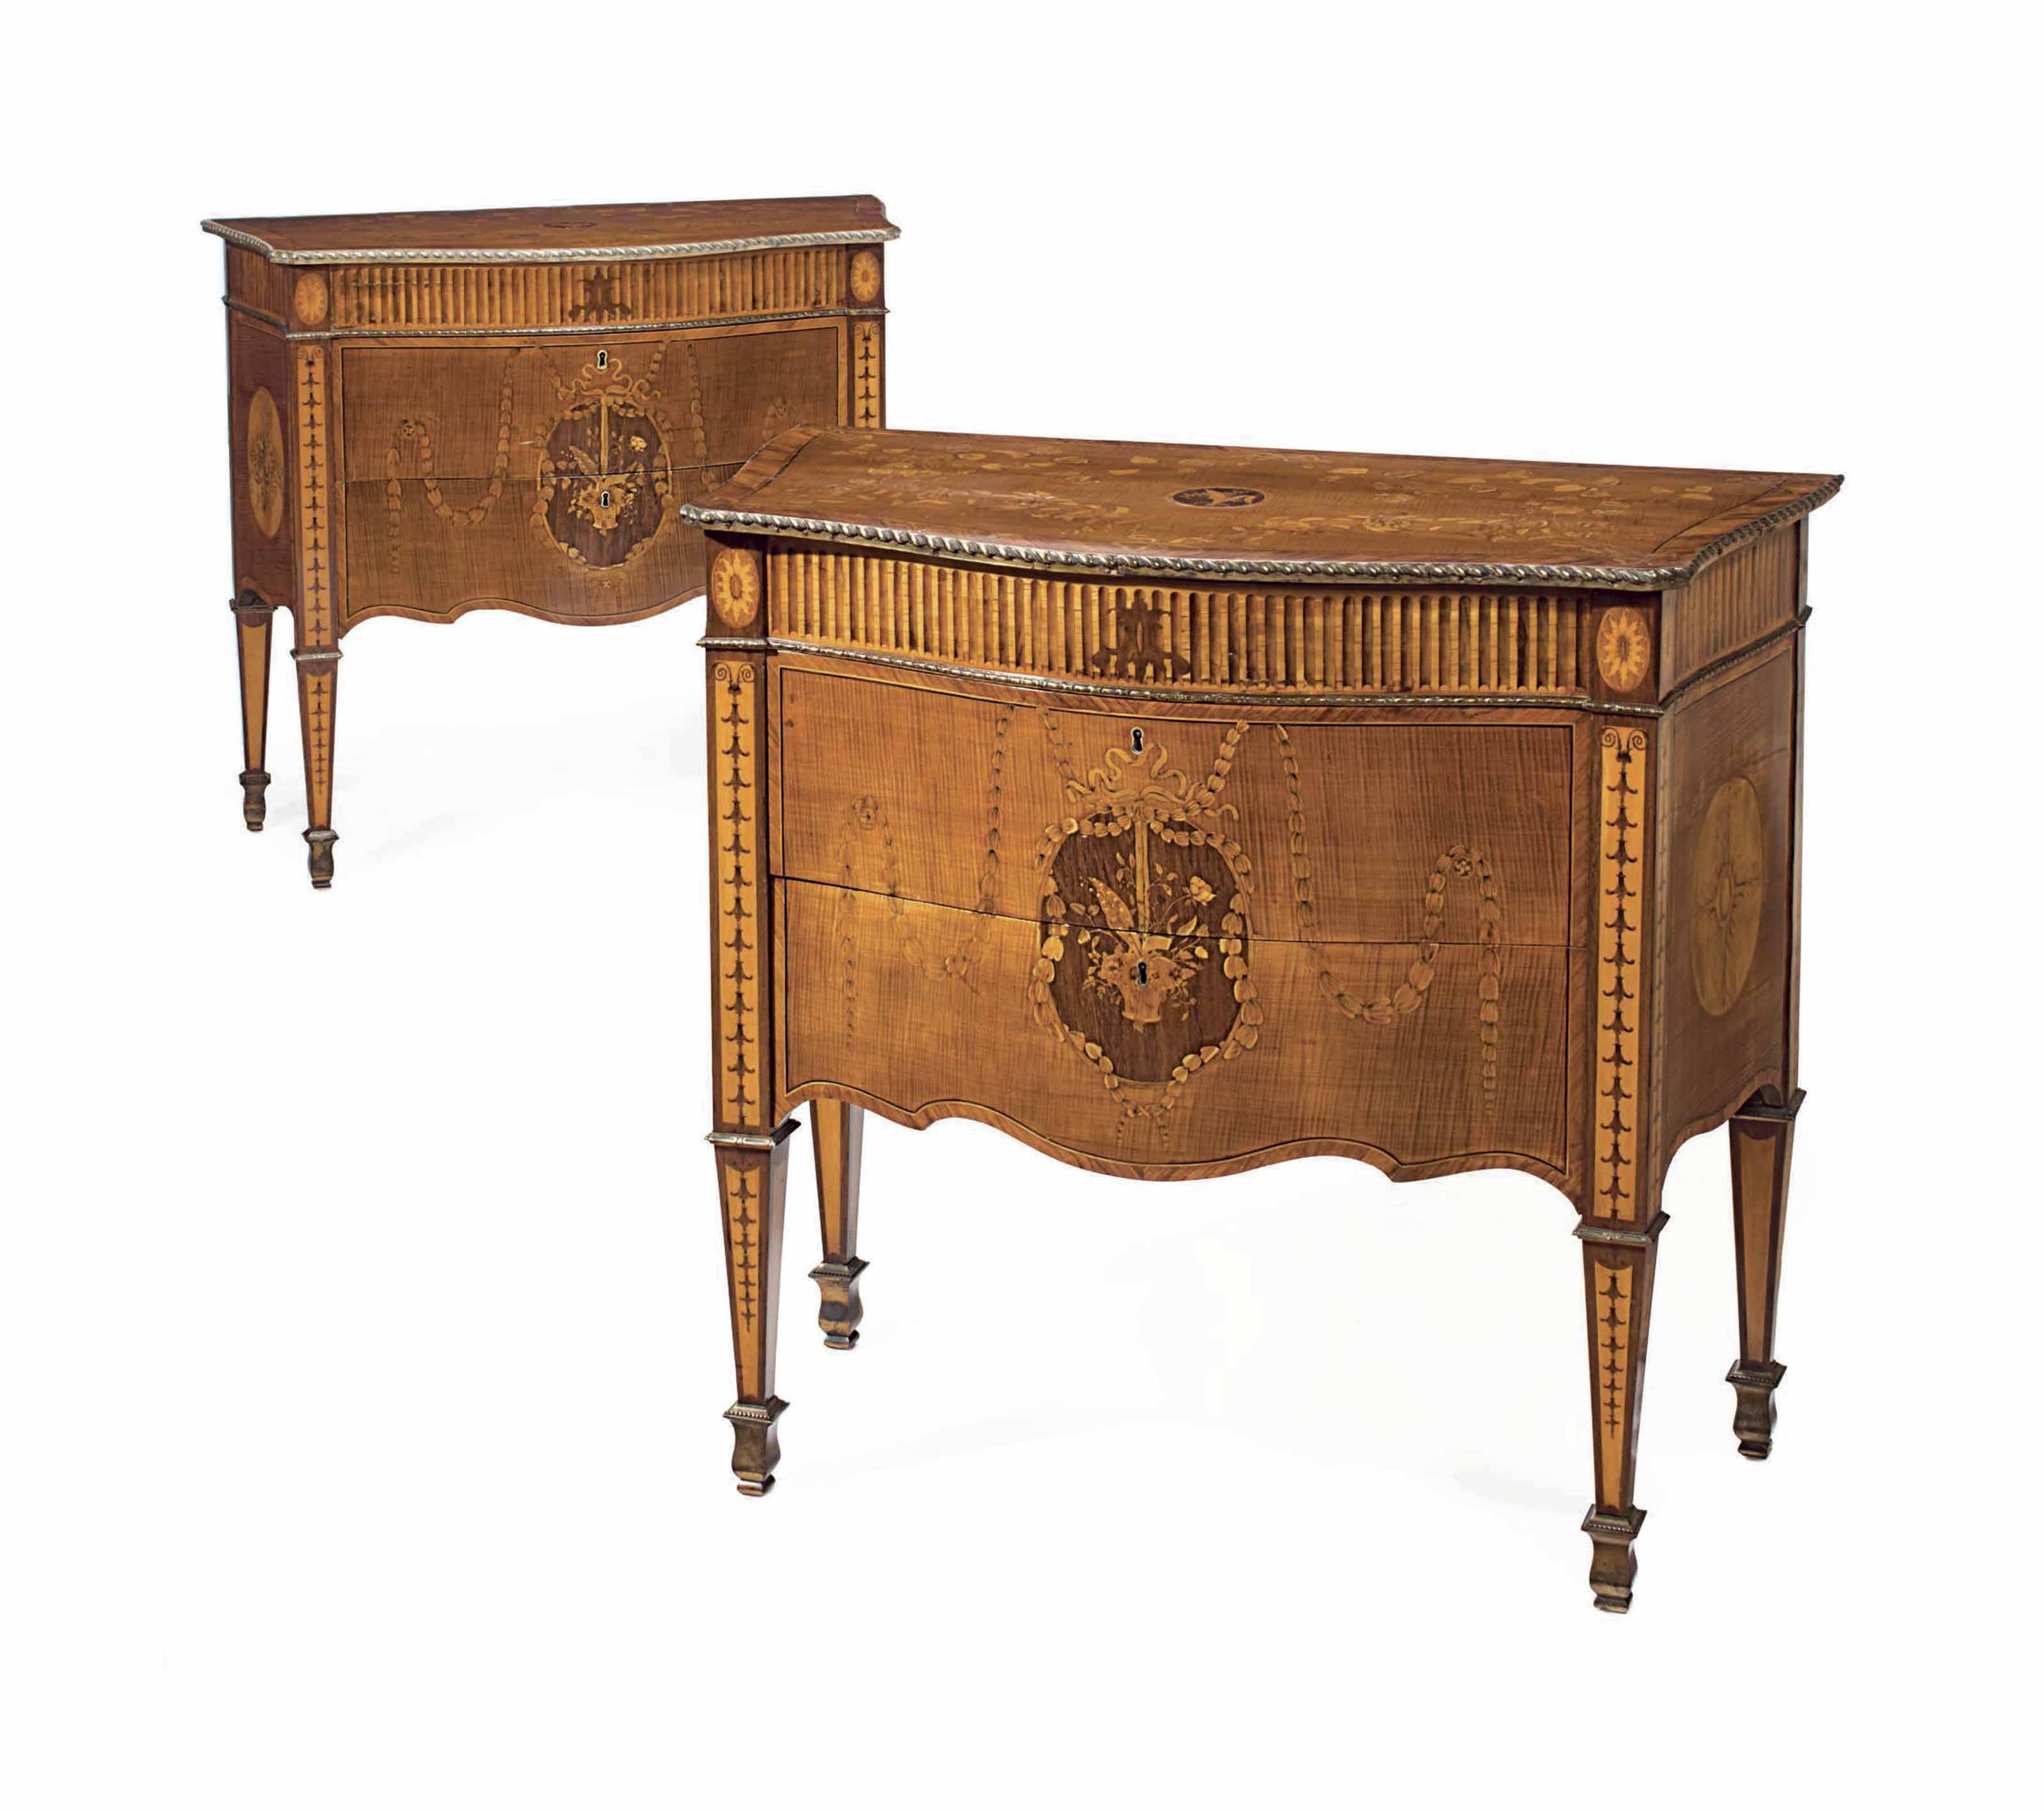 A PAIR OF GEORGE III LACQUERED-BRASS MOUNTED HAREWOOD, HOLLY, AMARANTH AND TULIPWOOD MARQUETRY COMMODES